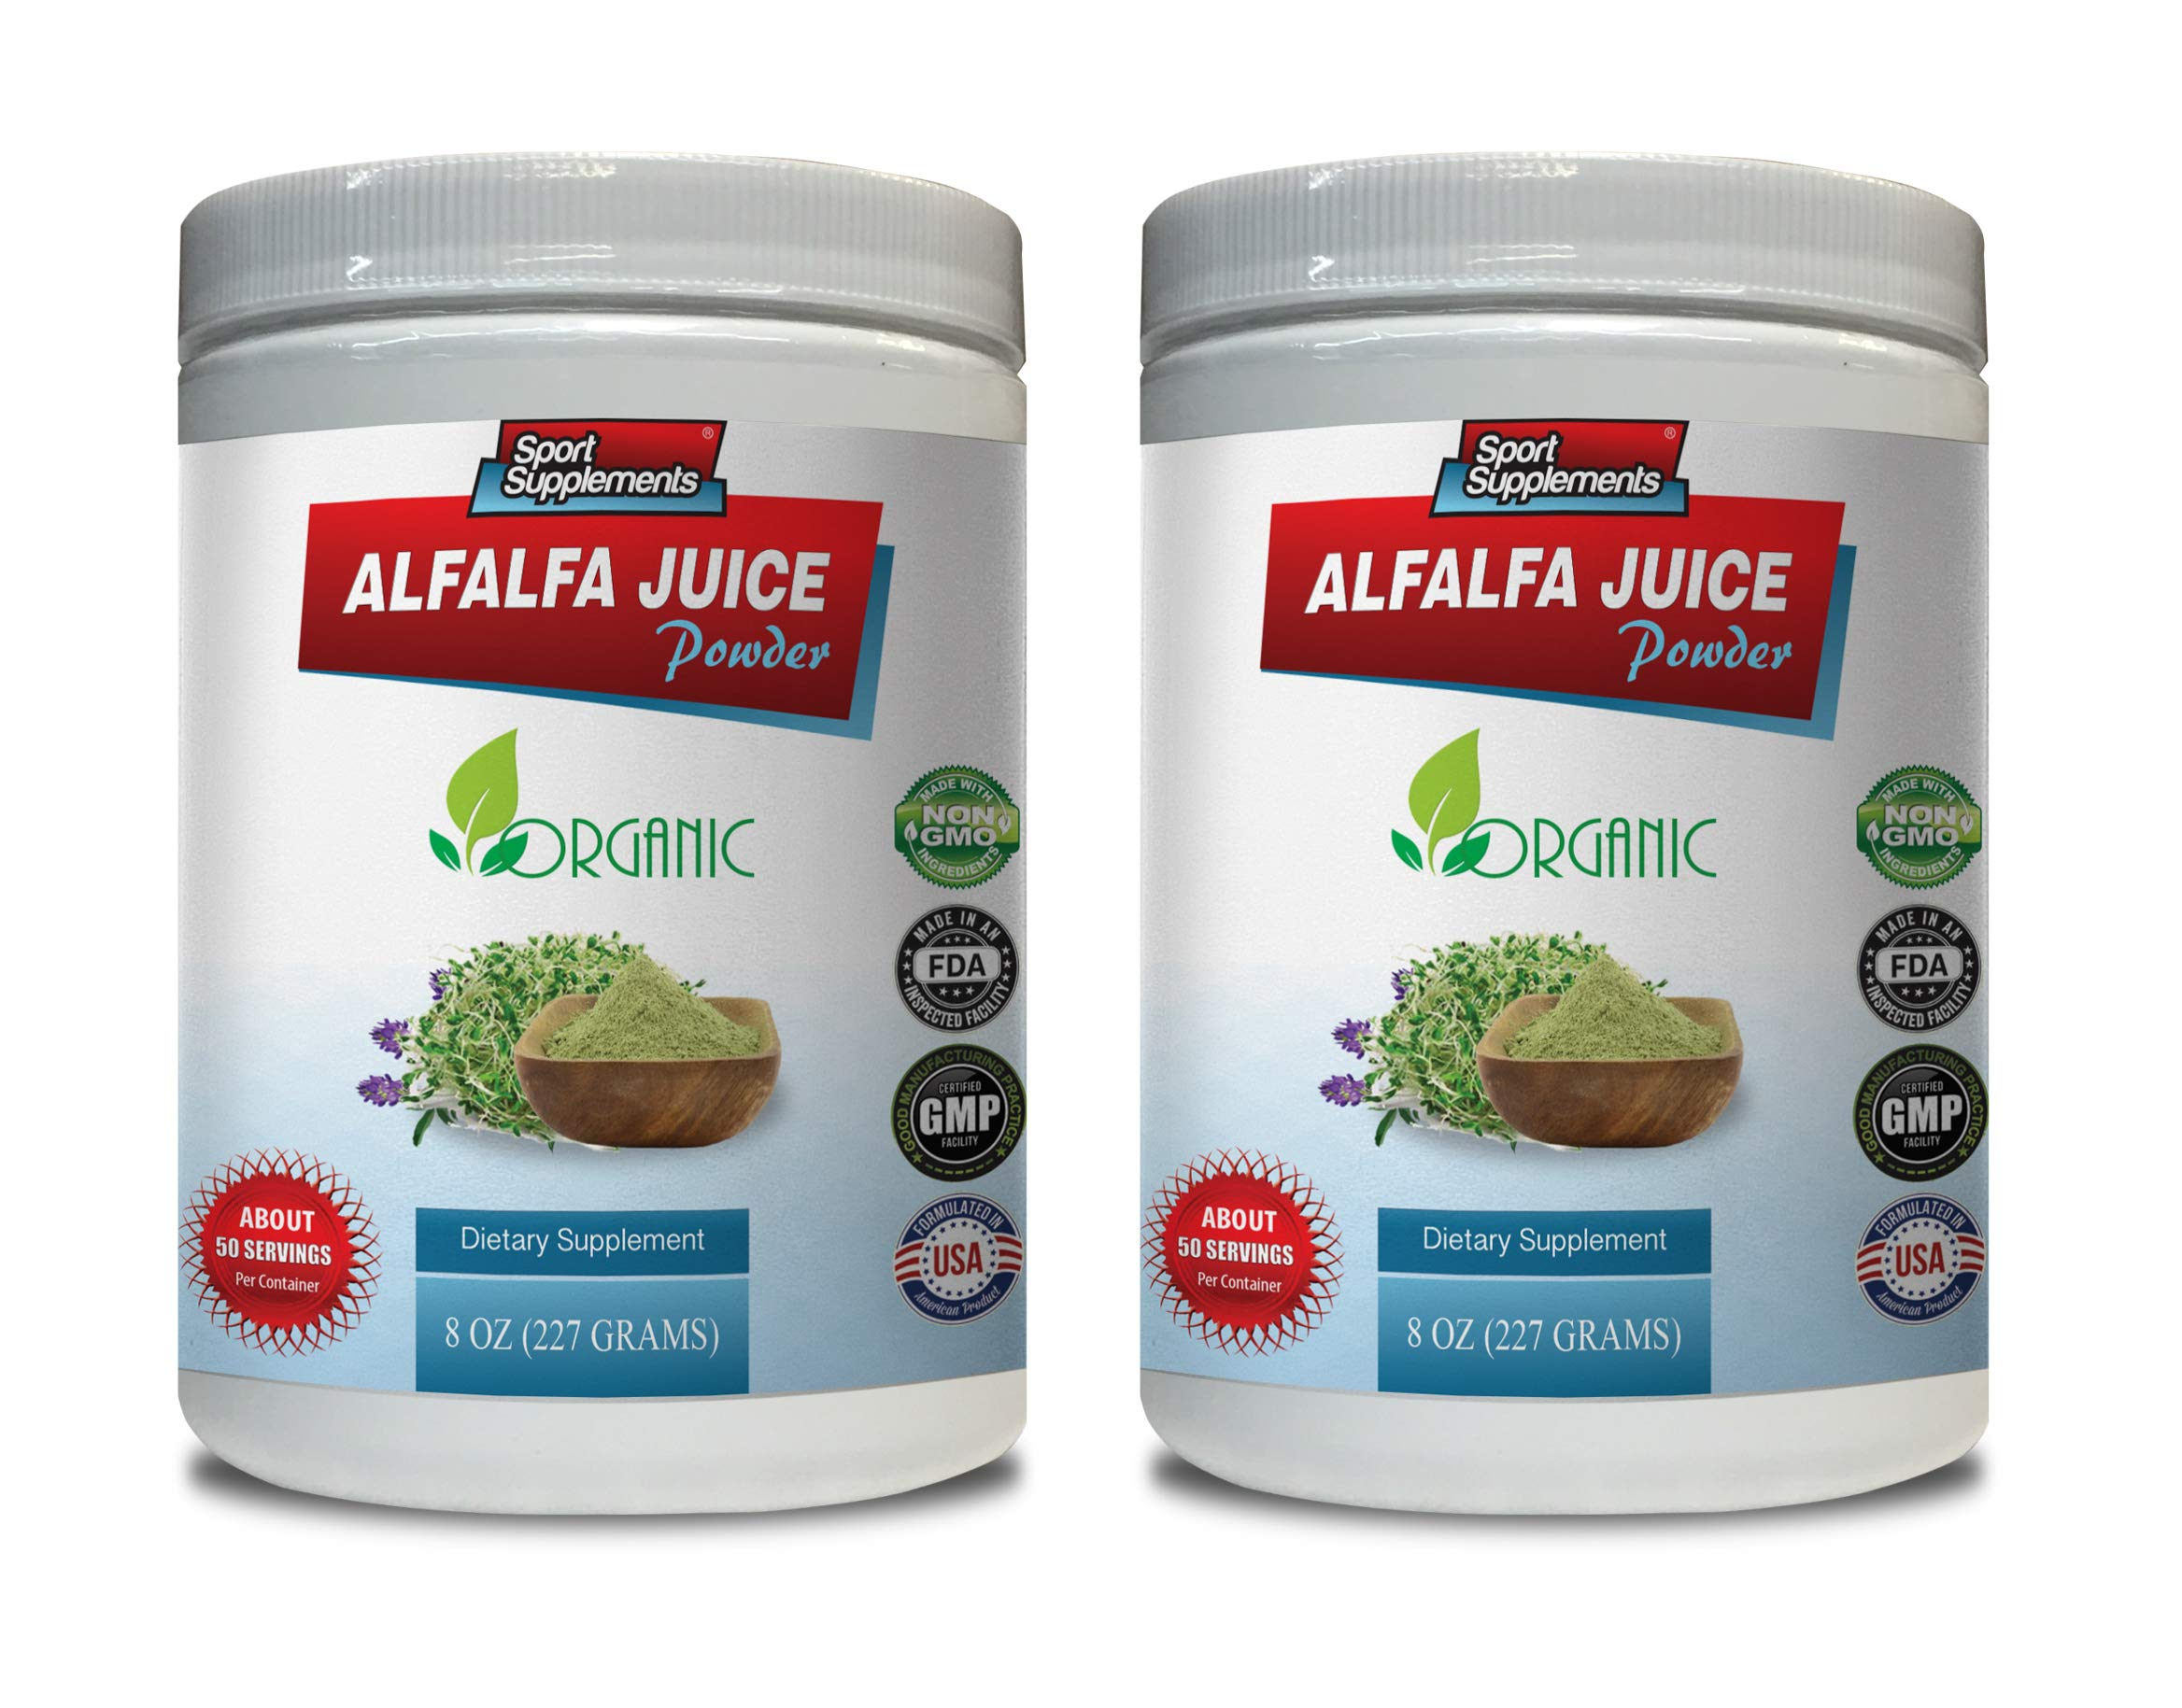 antioxidant Vitamin Supplement - Alfalfa Juice Powder - Organic Dietary Supplement - Alfalfa Powder Bulk - 2 Cans 16 OZ (100 Servings)